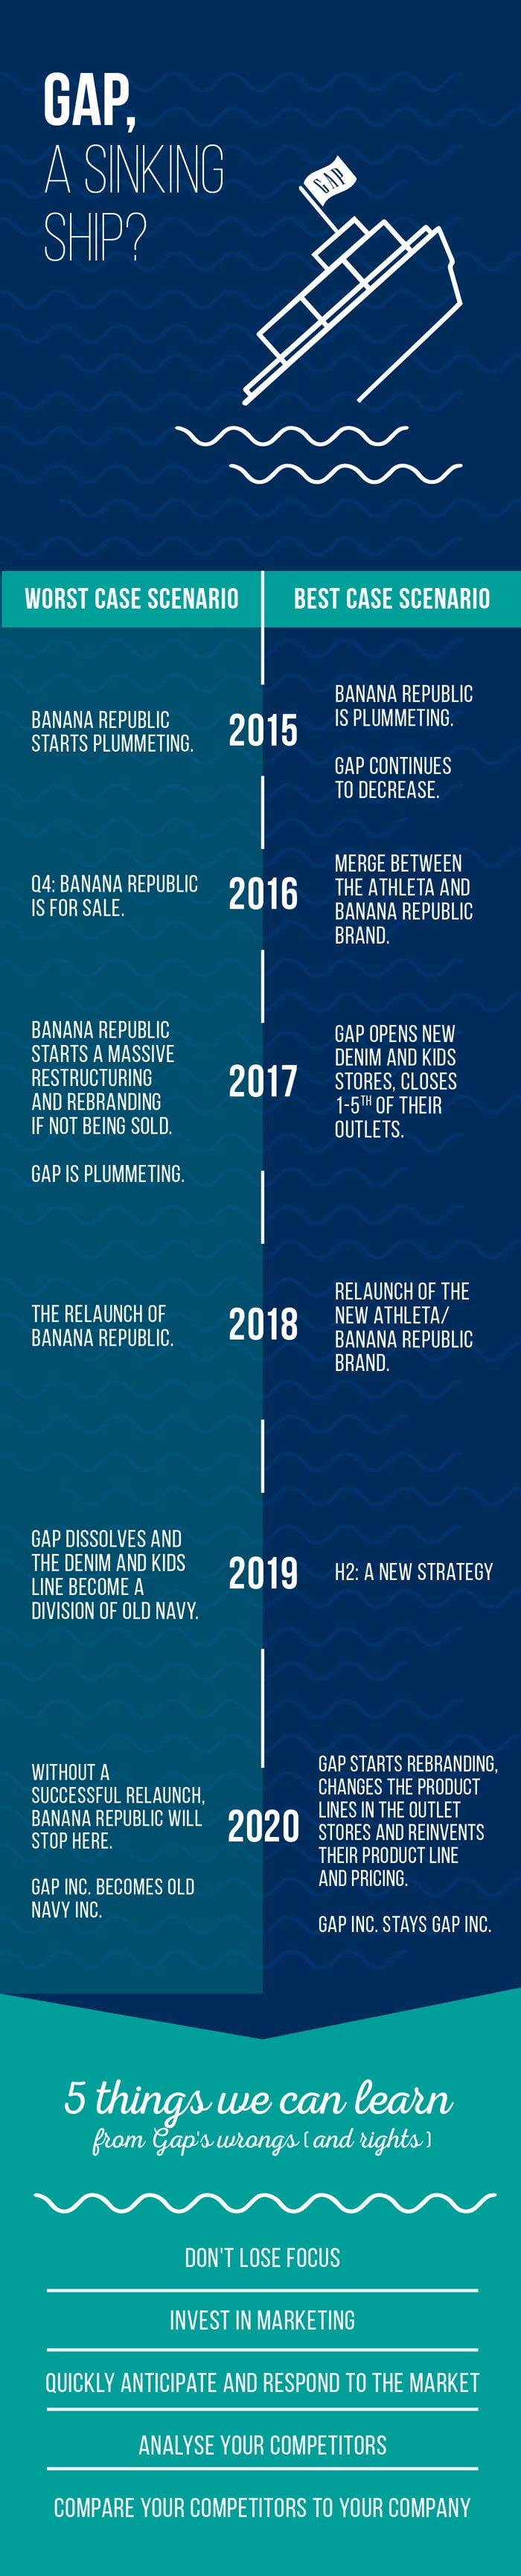 Infographic - Can Gap bounce back after becoming fashion's 'basic' brand?